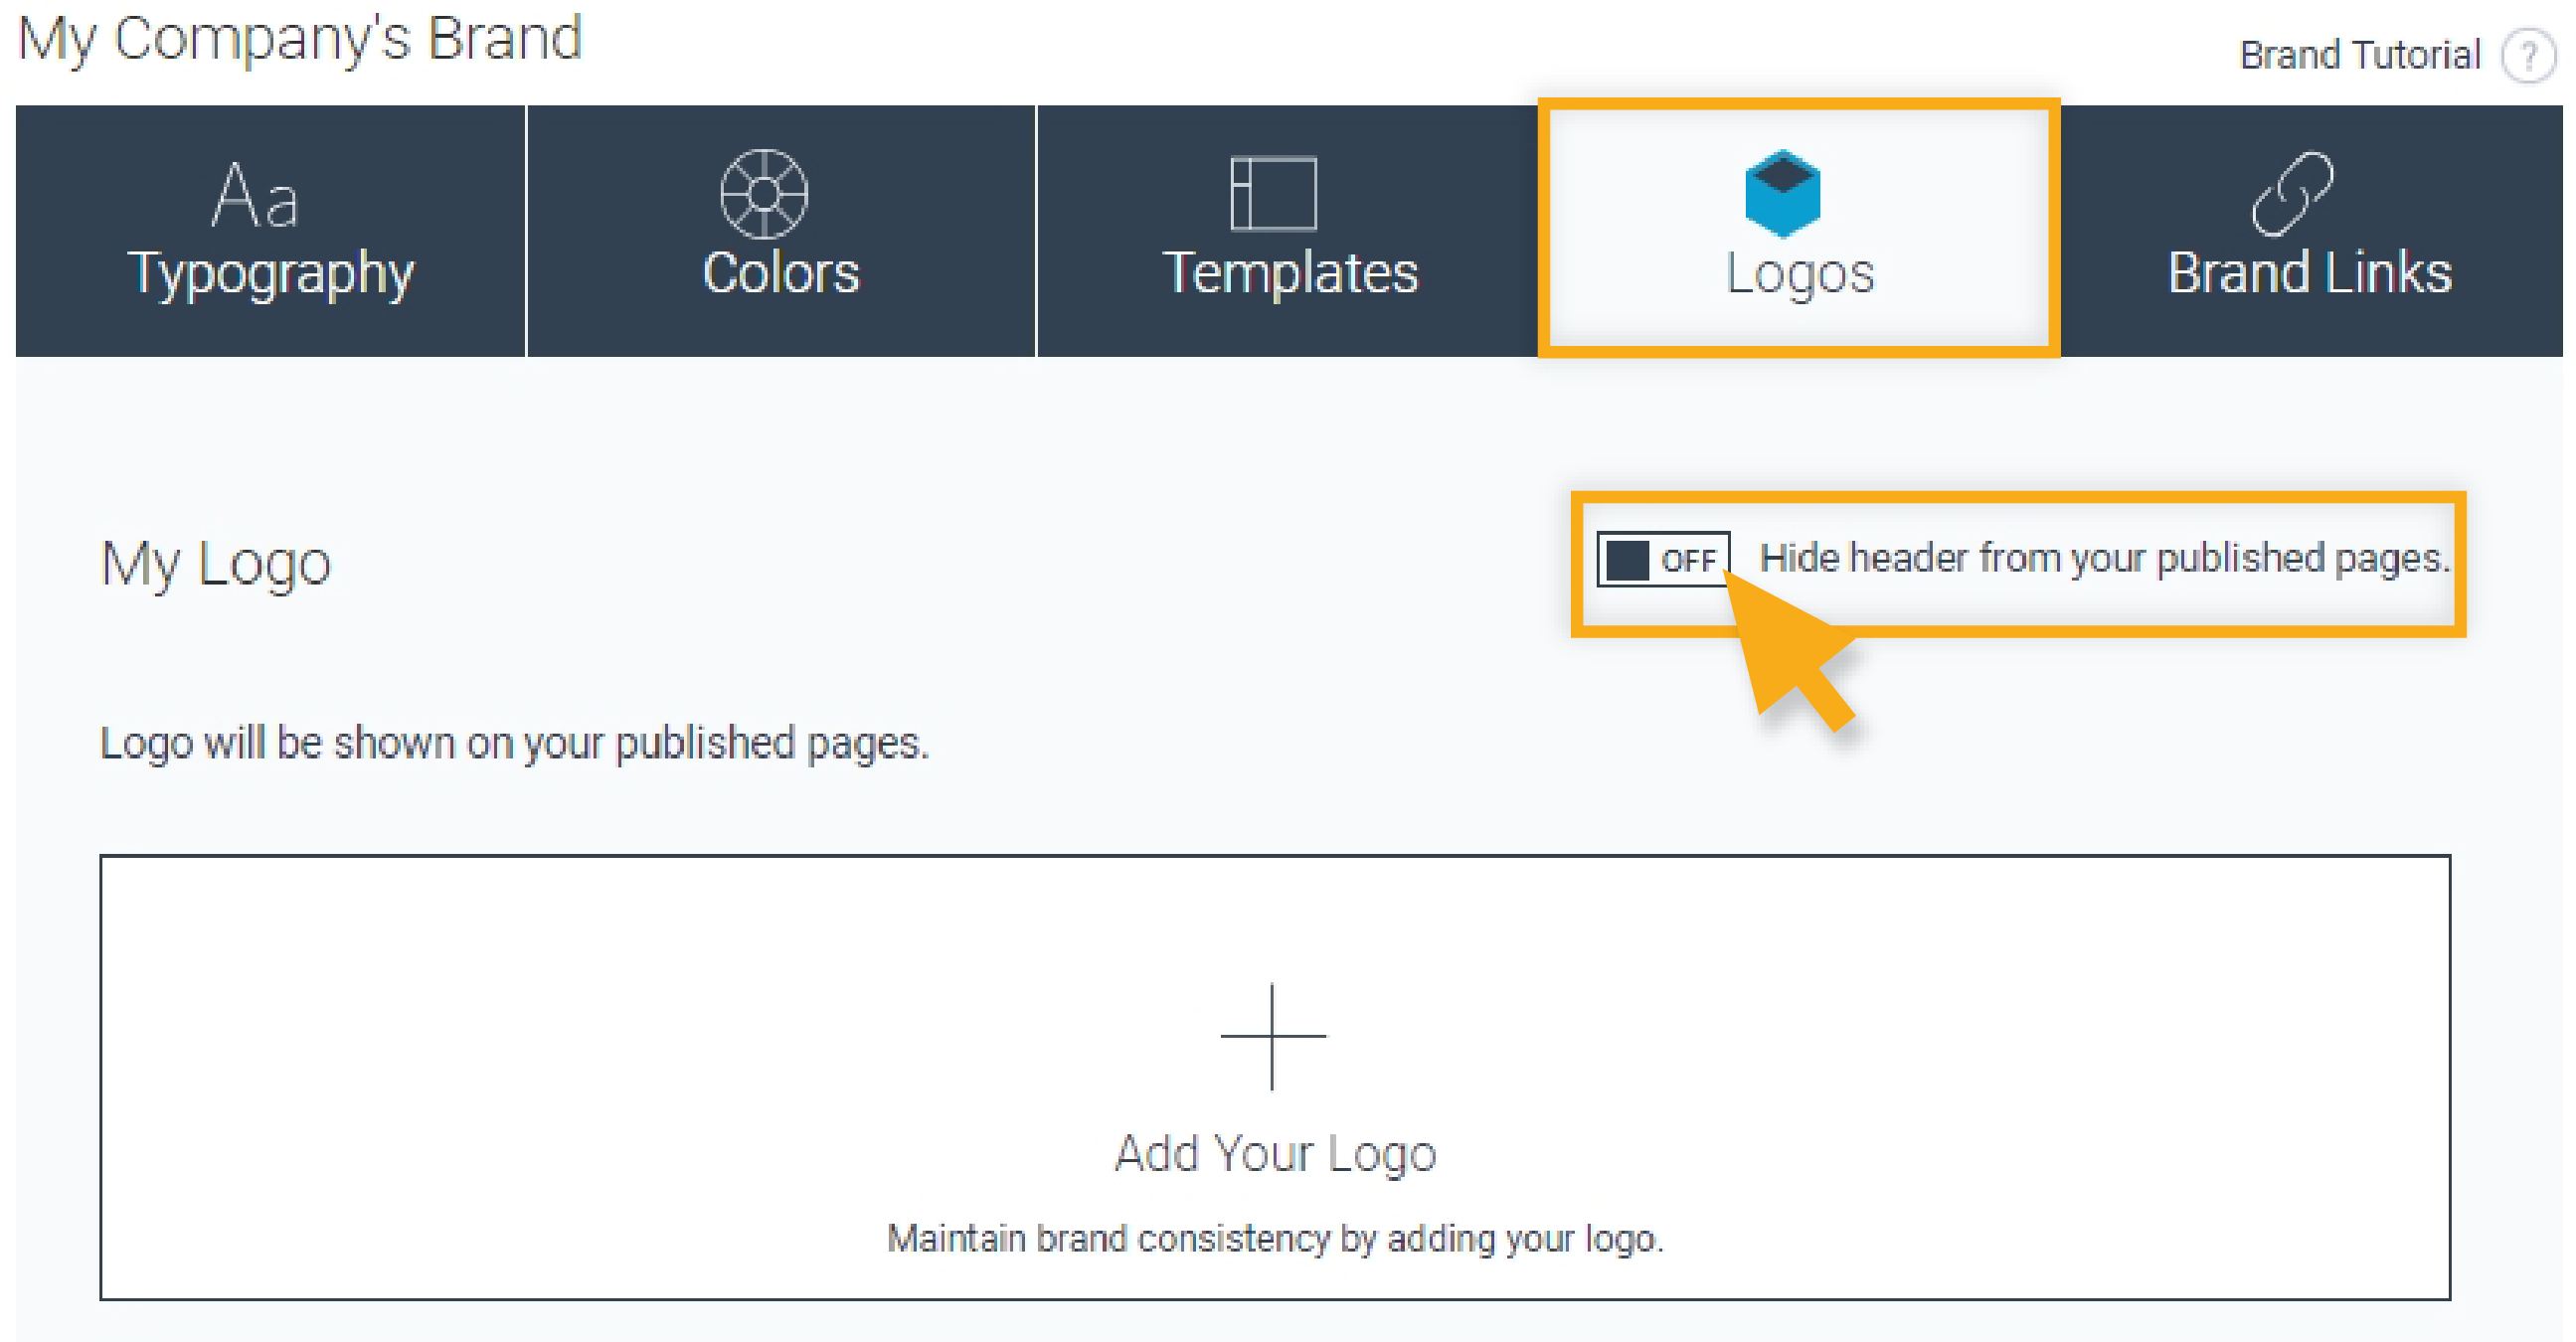 hide header from your published pages